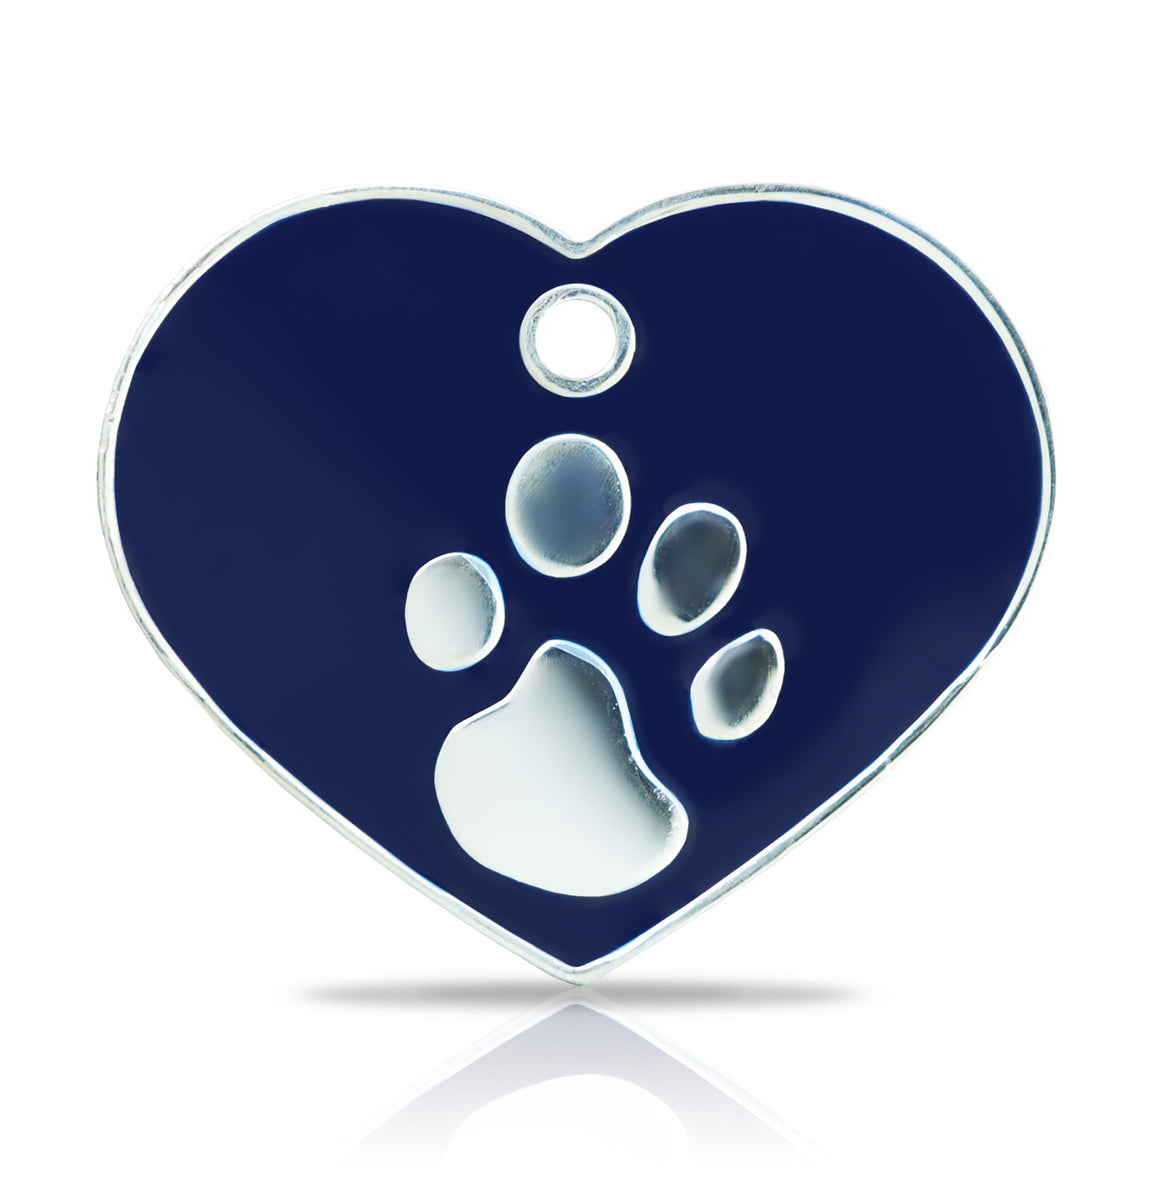 TaggIT Elegance Large Heart Blue & Silver iMarc Pet Tag